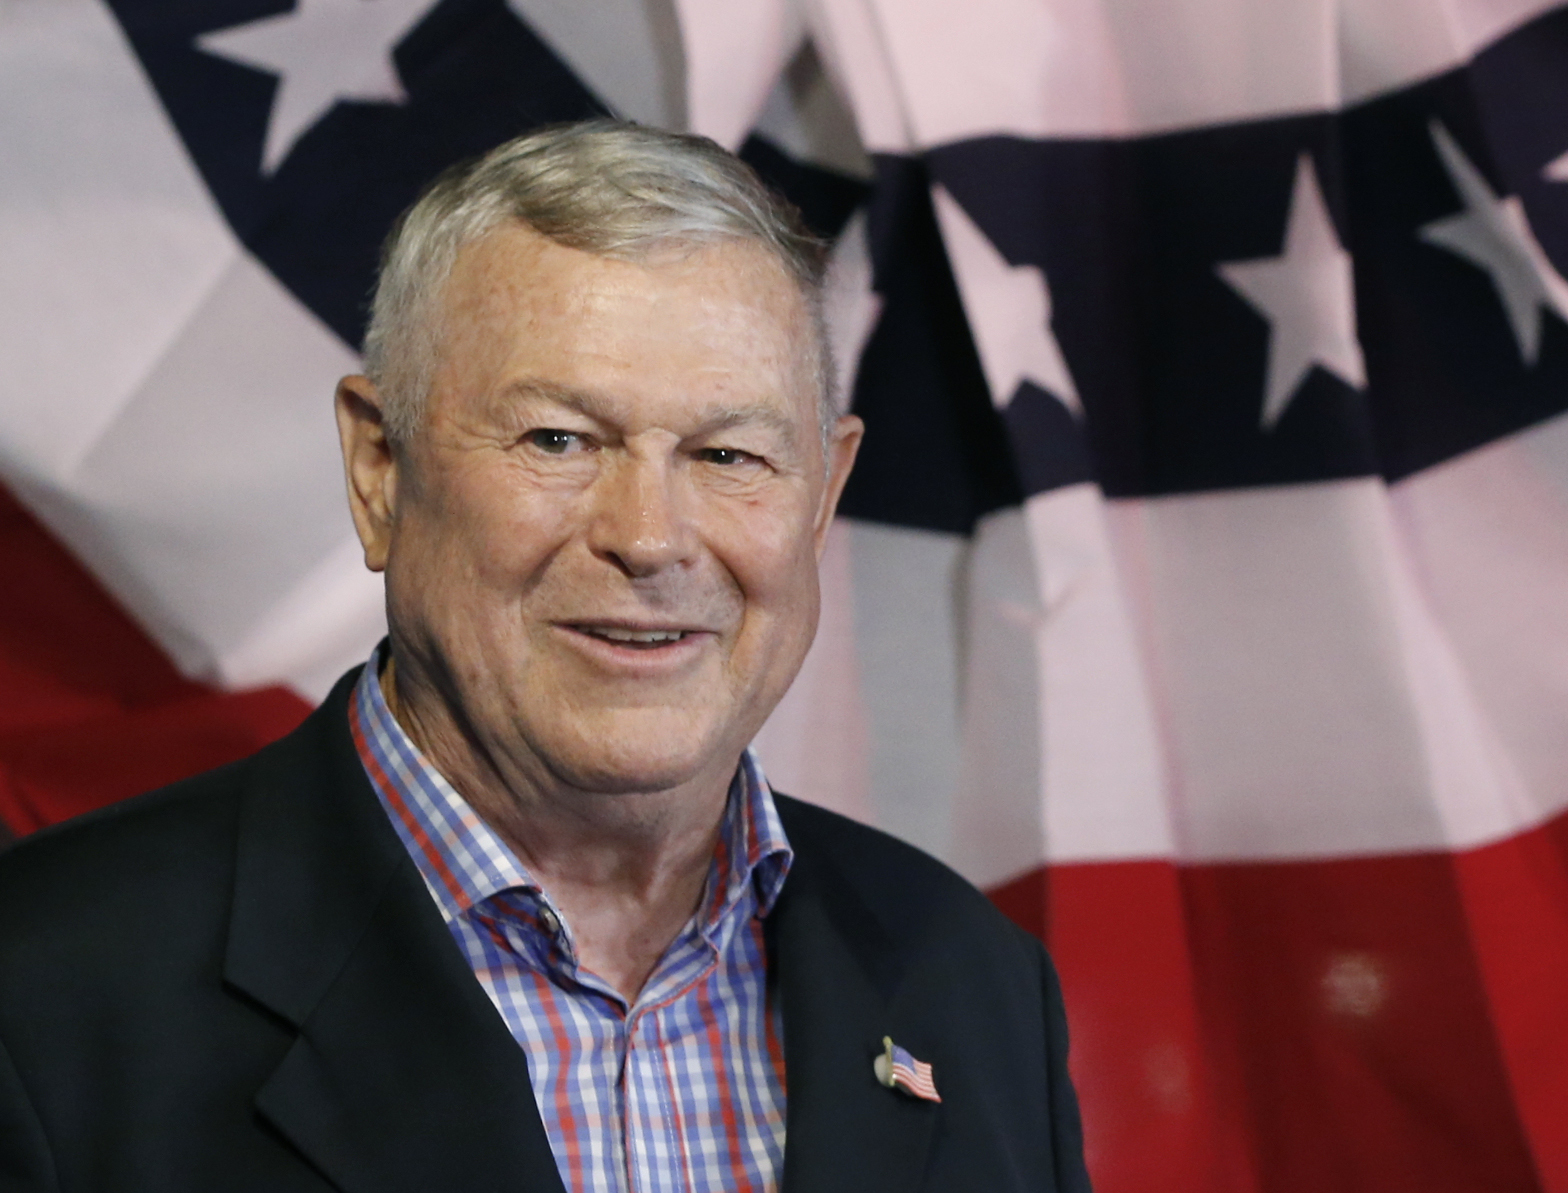 In this Nov. 6, 2018 file photo, U.S. Rep. Dana Rohrabacher, R-Costa Mesa, addresses members of the media and supporters waiting for elections results at the Skosh Monahan's Irish Pub in Costa Mesa, Calif. The former California representative confirmed he attended the riot at the U.S. Capitol on Jan. 6, 2021, after anonymous investigators online identified him in footage. He said he went to protest what he called a fraudulent election. (AP Photo/Damian Dovarganes, File)